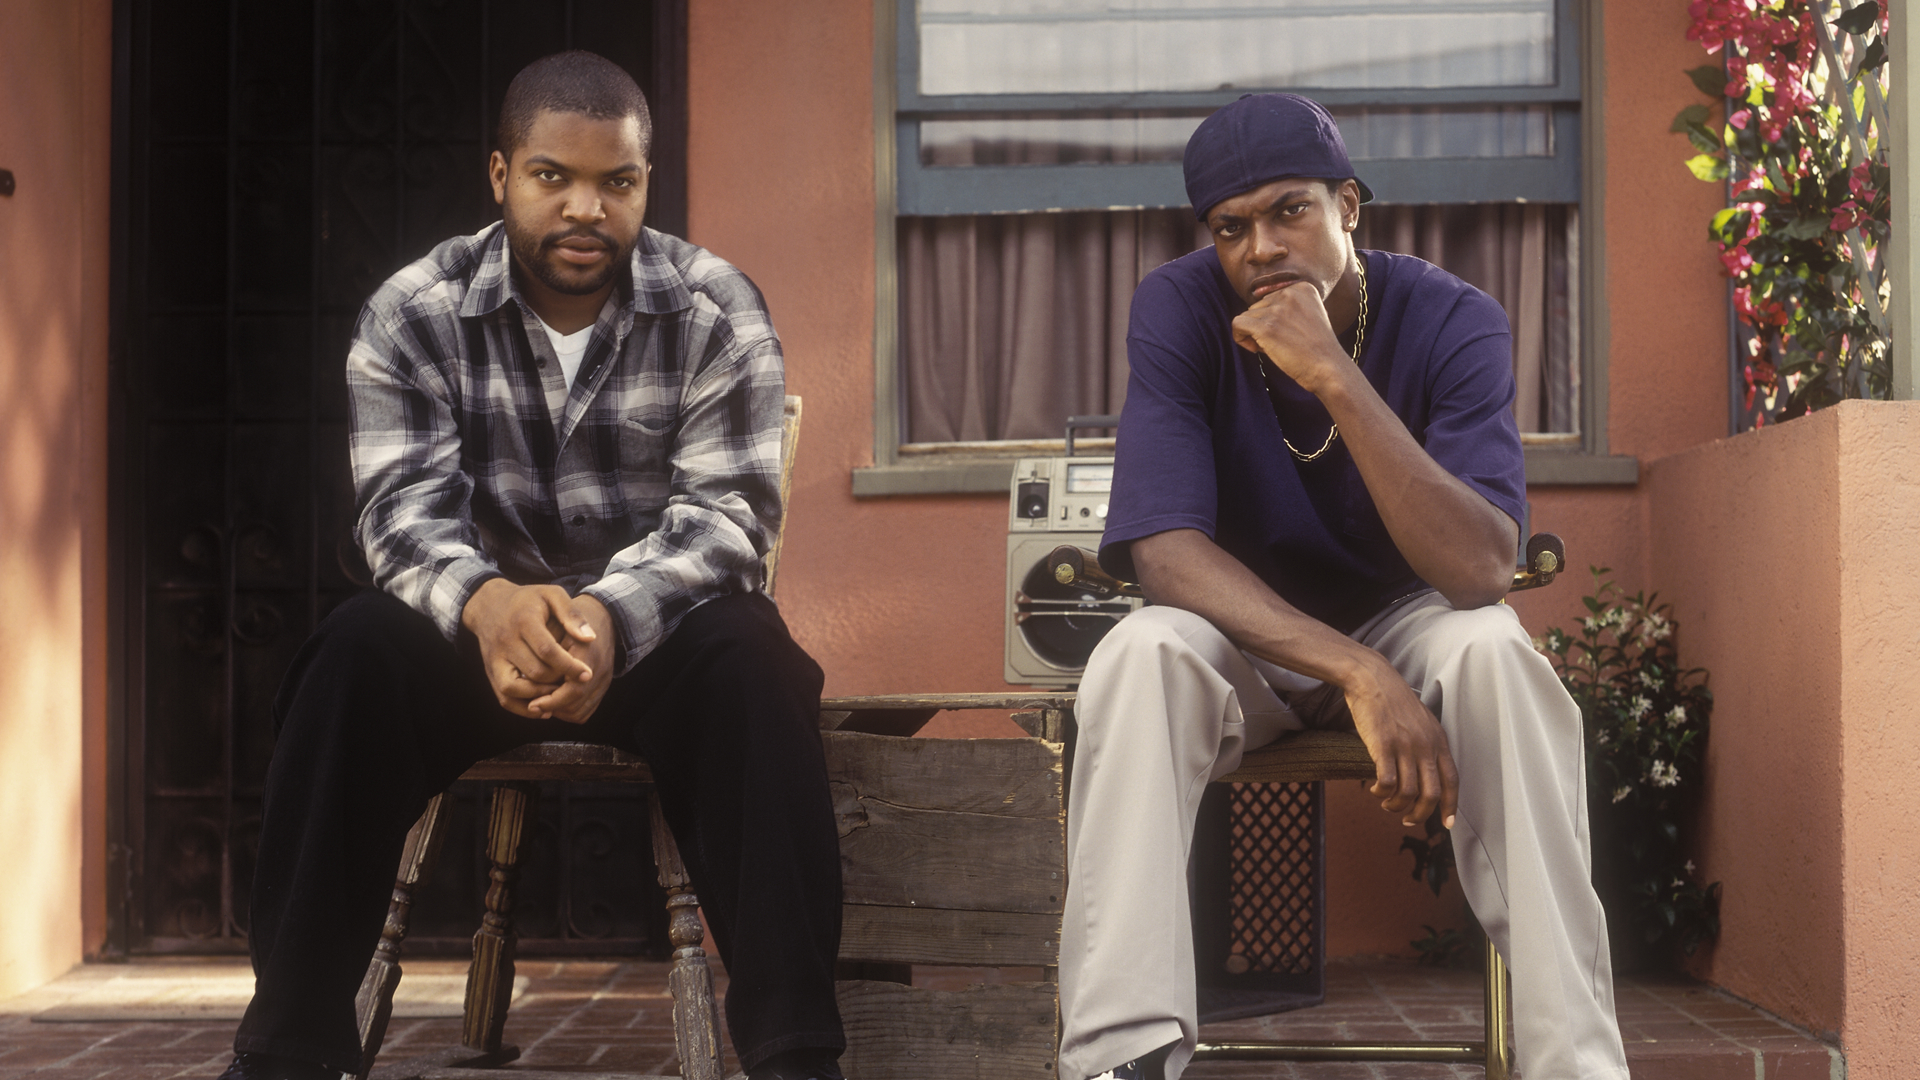 EC: How a Bowl of Cereal Changed Ice Cube's Career